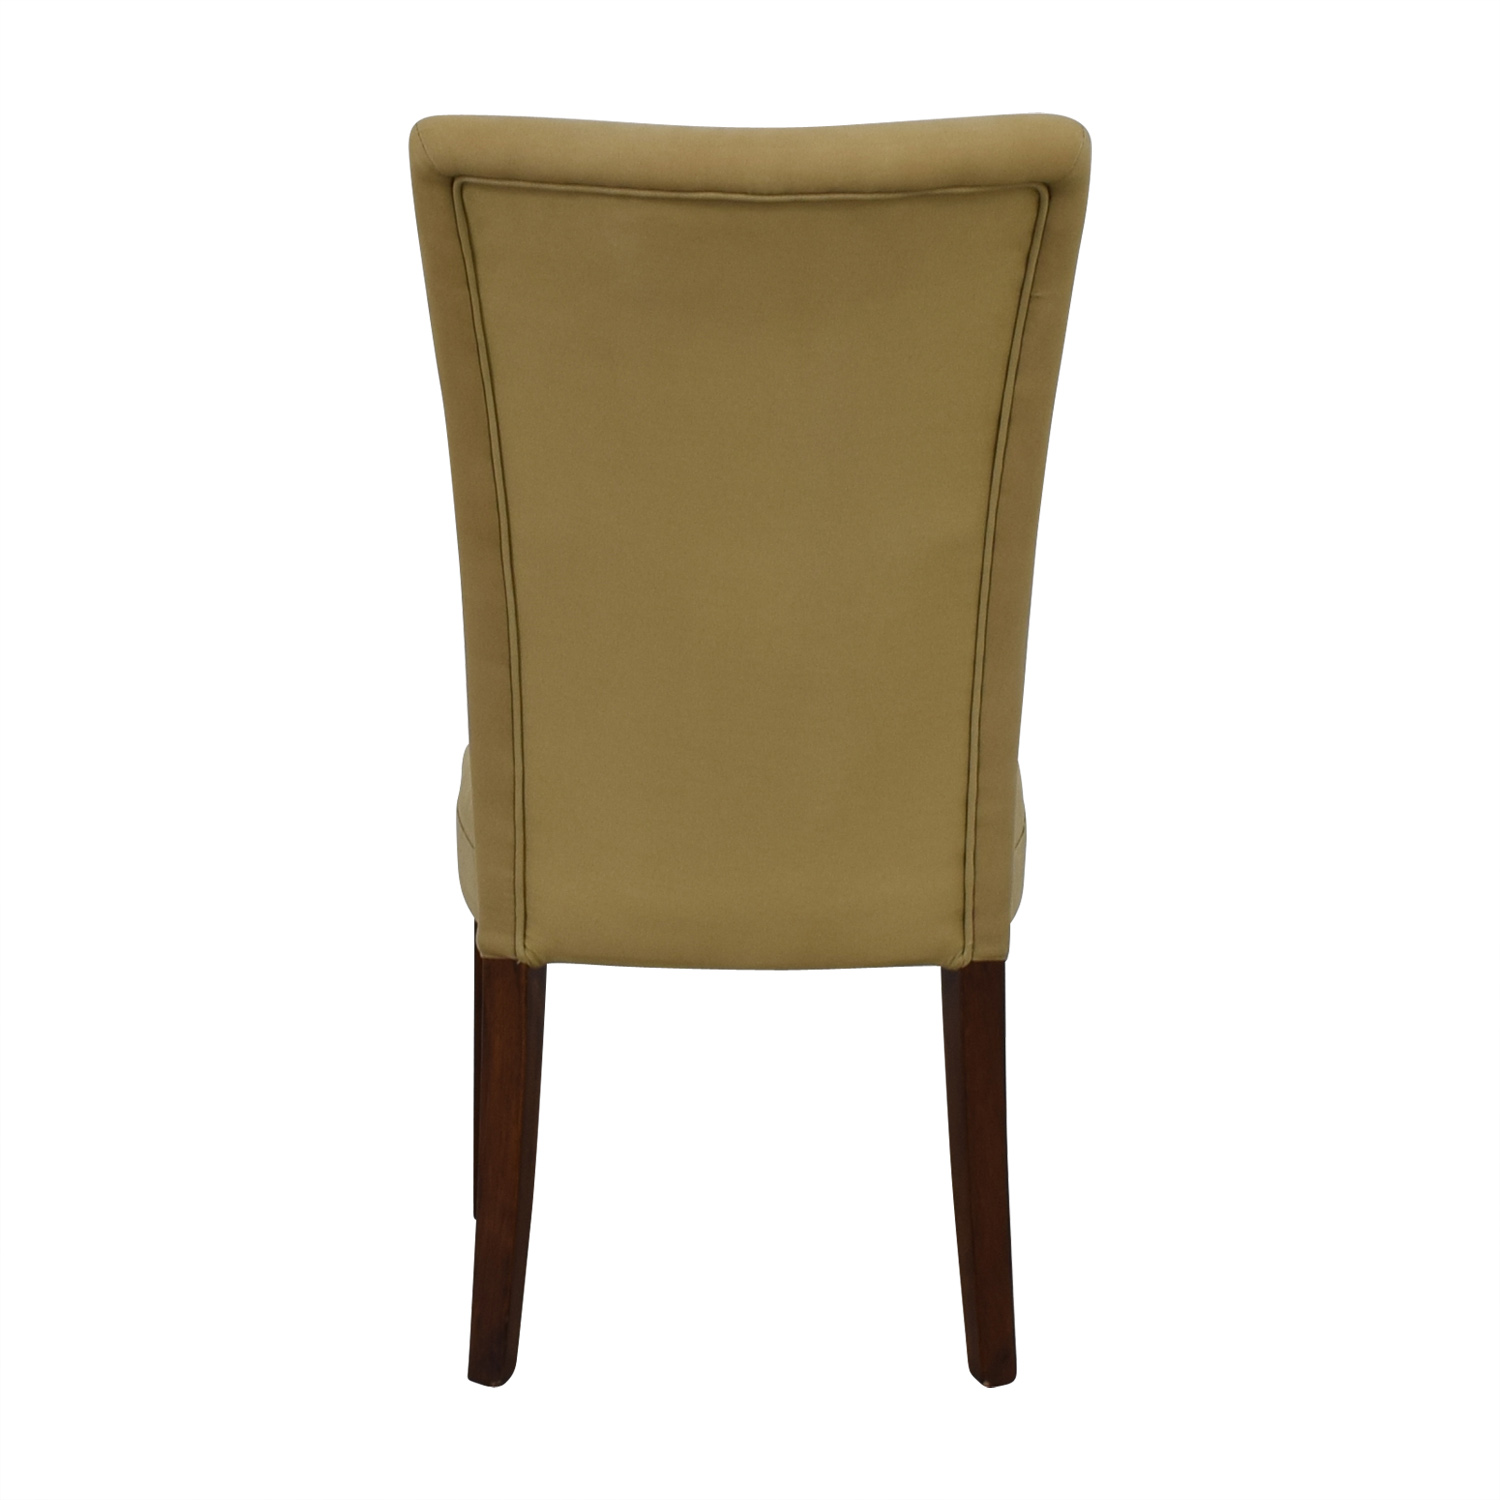 dining chairs used dining chairs for sale. Black Bedroom Furniture Sets. Home Design Ideas